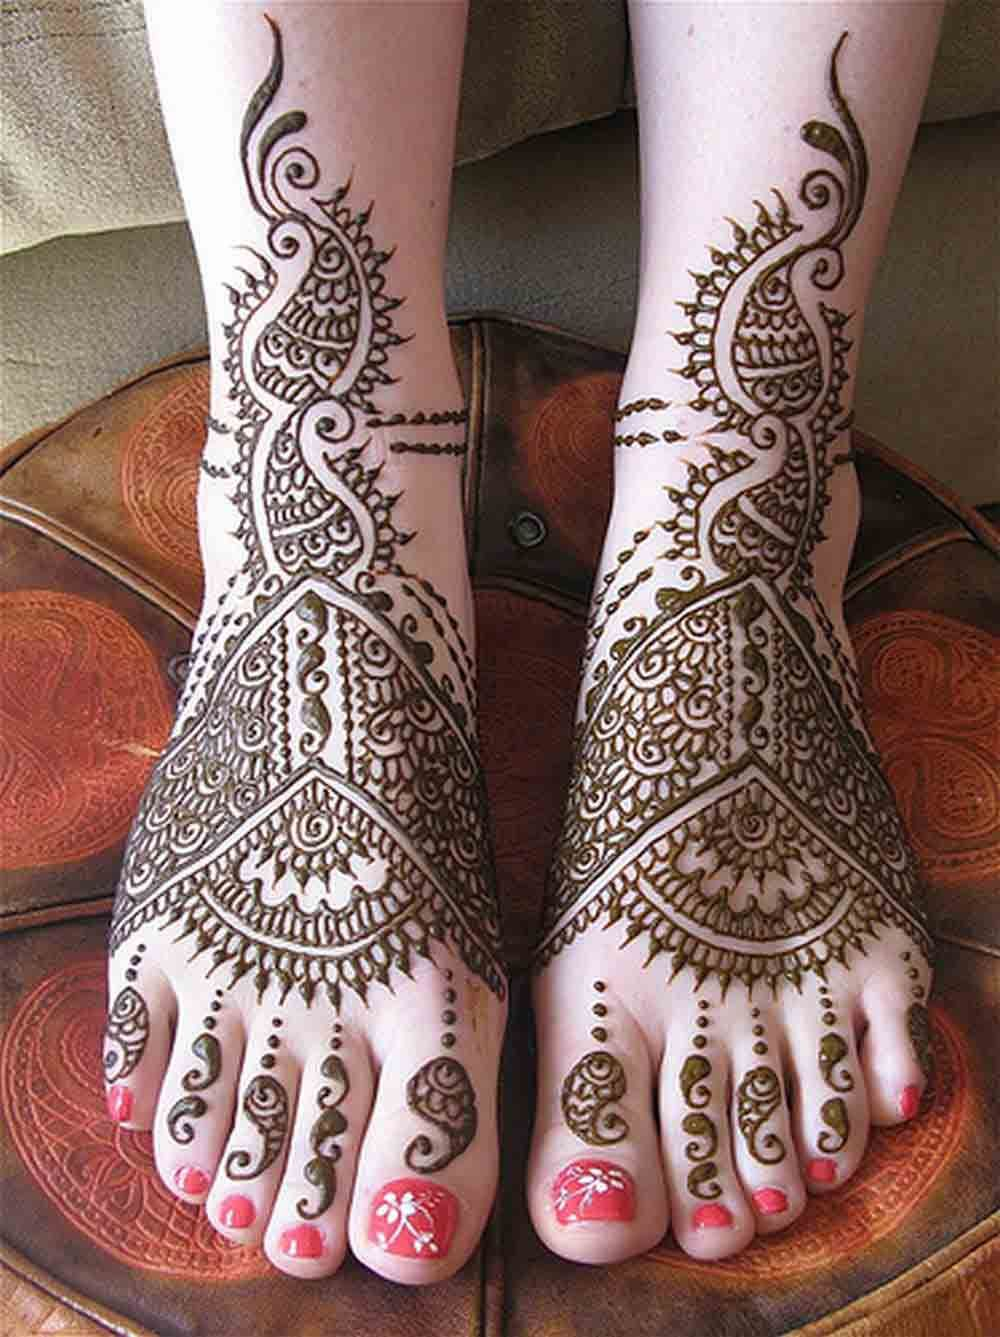 Latest mehndi designs 2016 2017 top 47 mehndi styles - Latest Bridal Mehndi Designs 2017 2018 In India And Pakistan